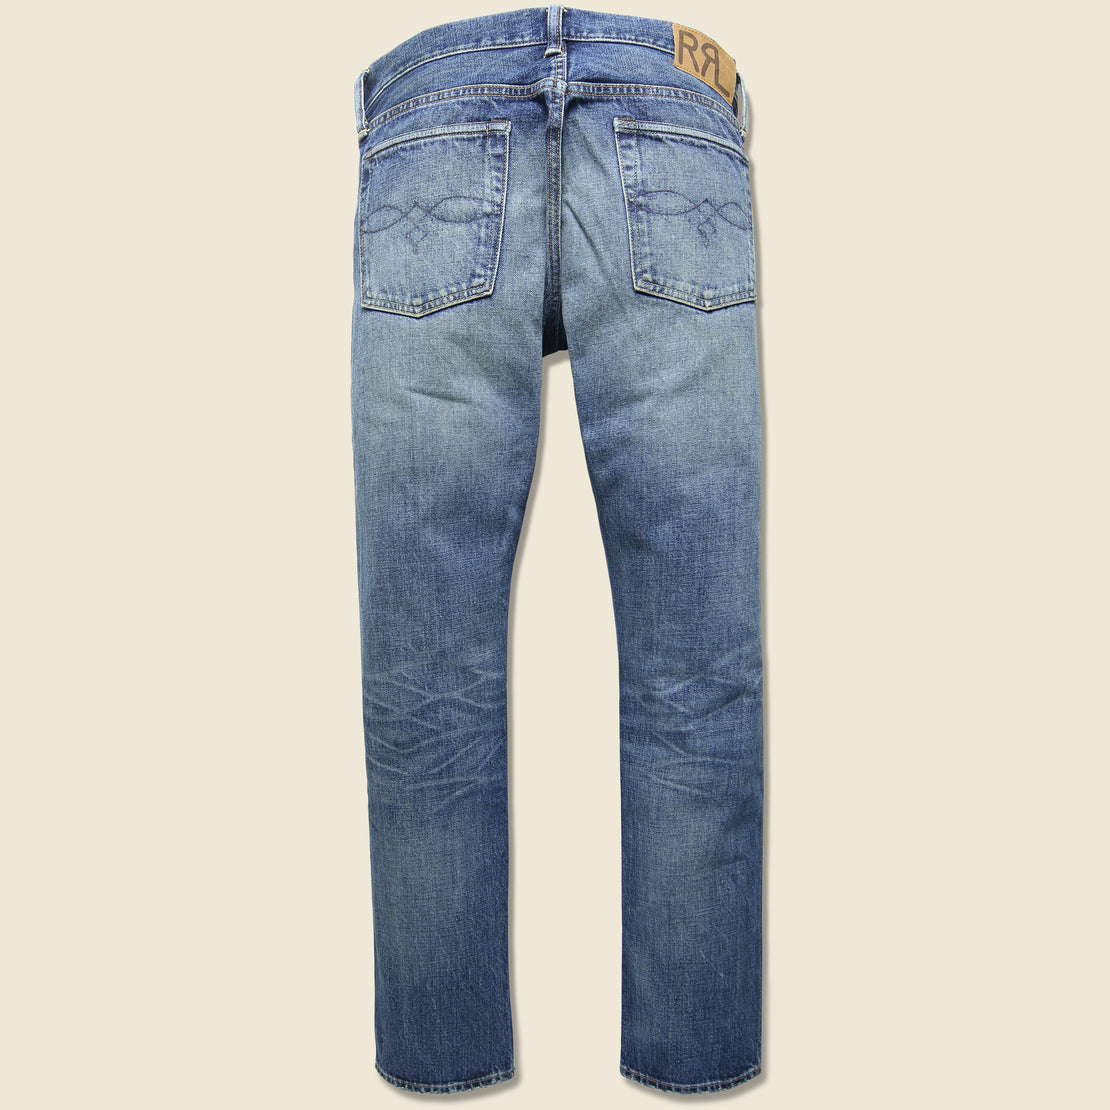 Slim Fit Jean - Gibson Wash